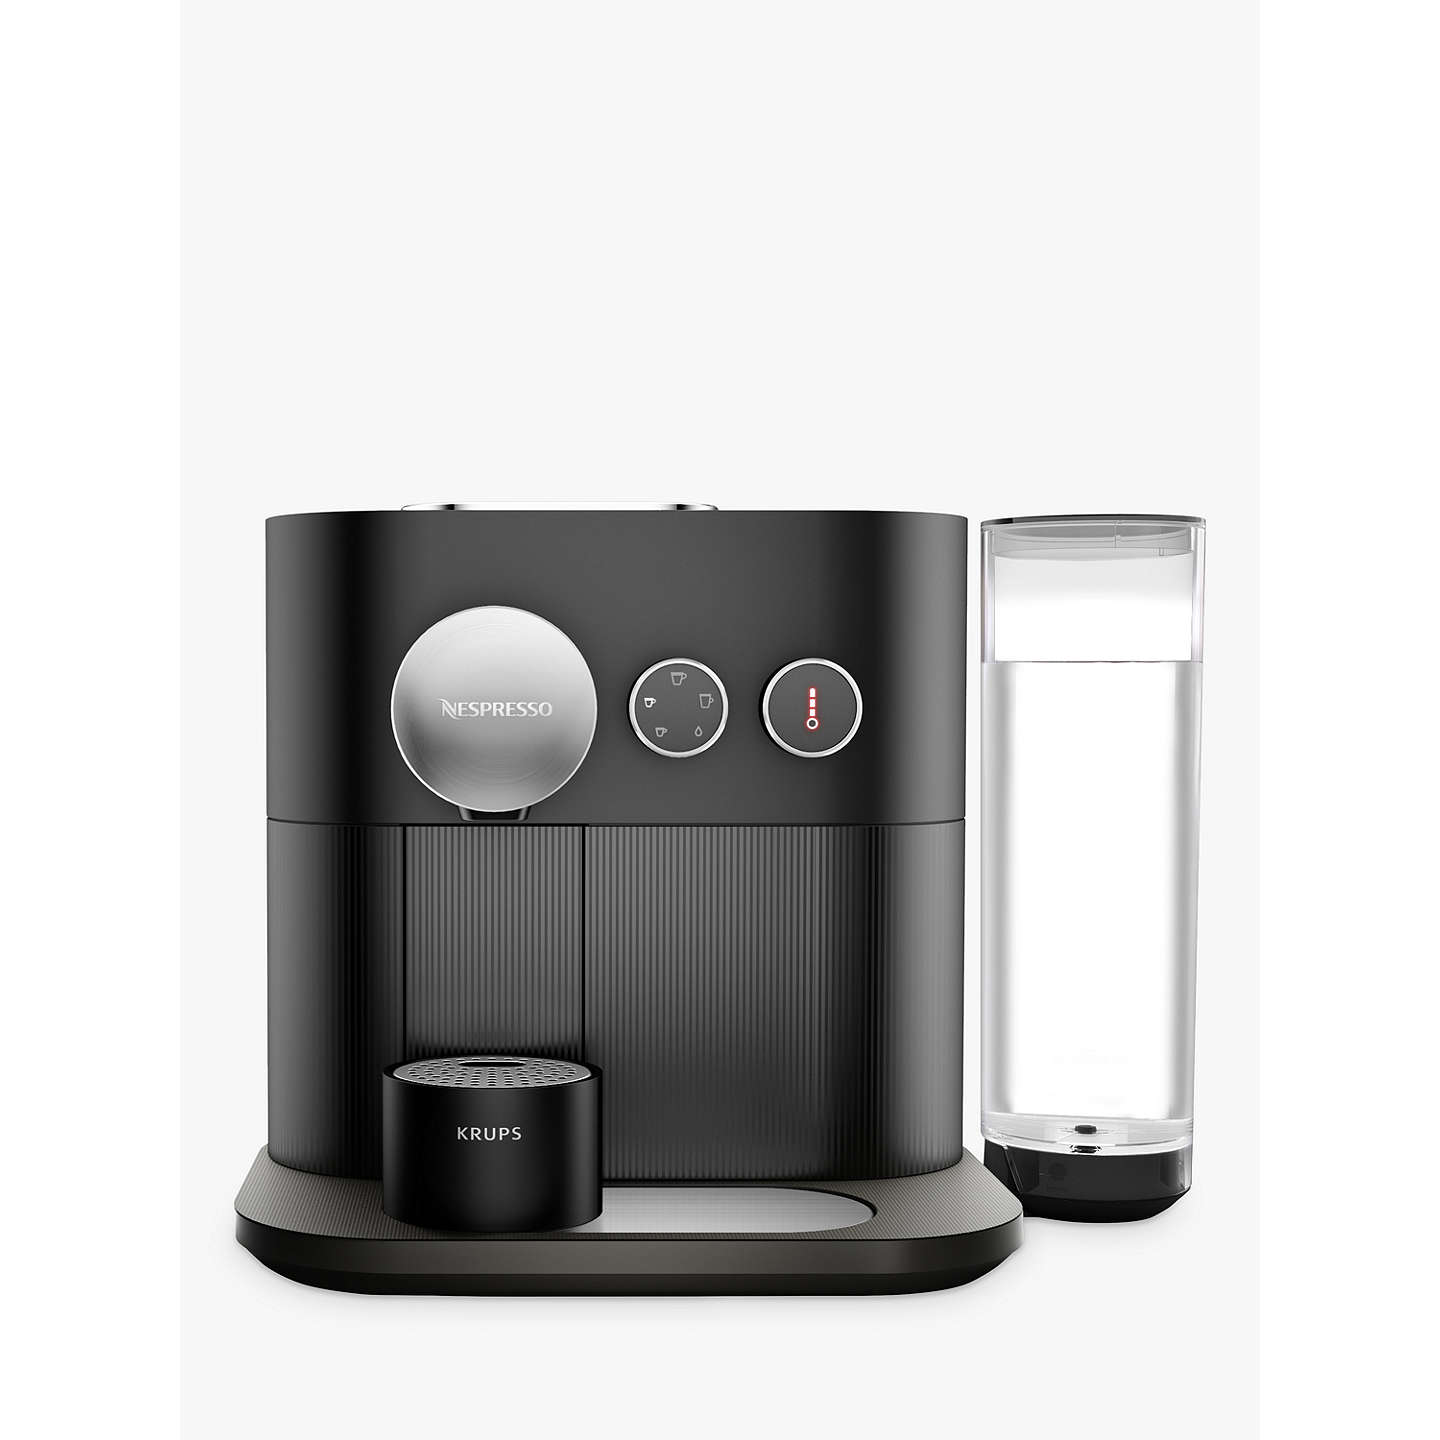 nespresso expert coffee machine by krups matt black at. Black Bedroom Furniture Sets. Home Design Ideas